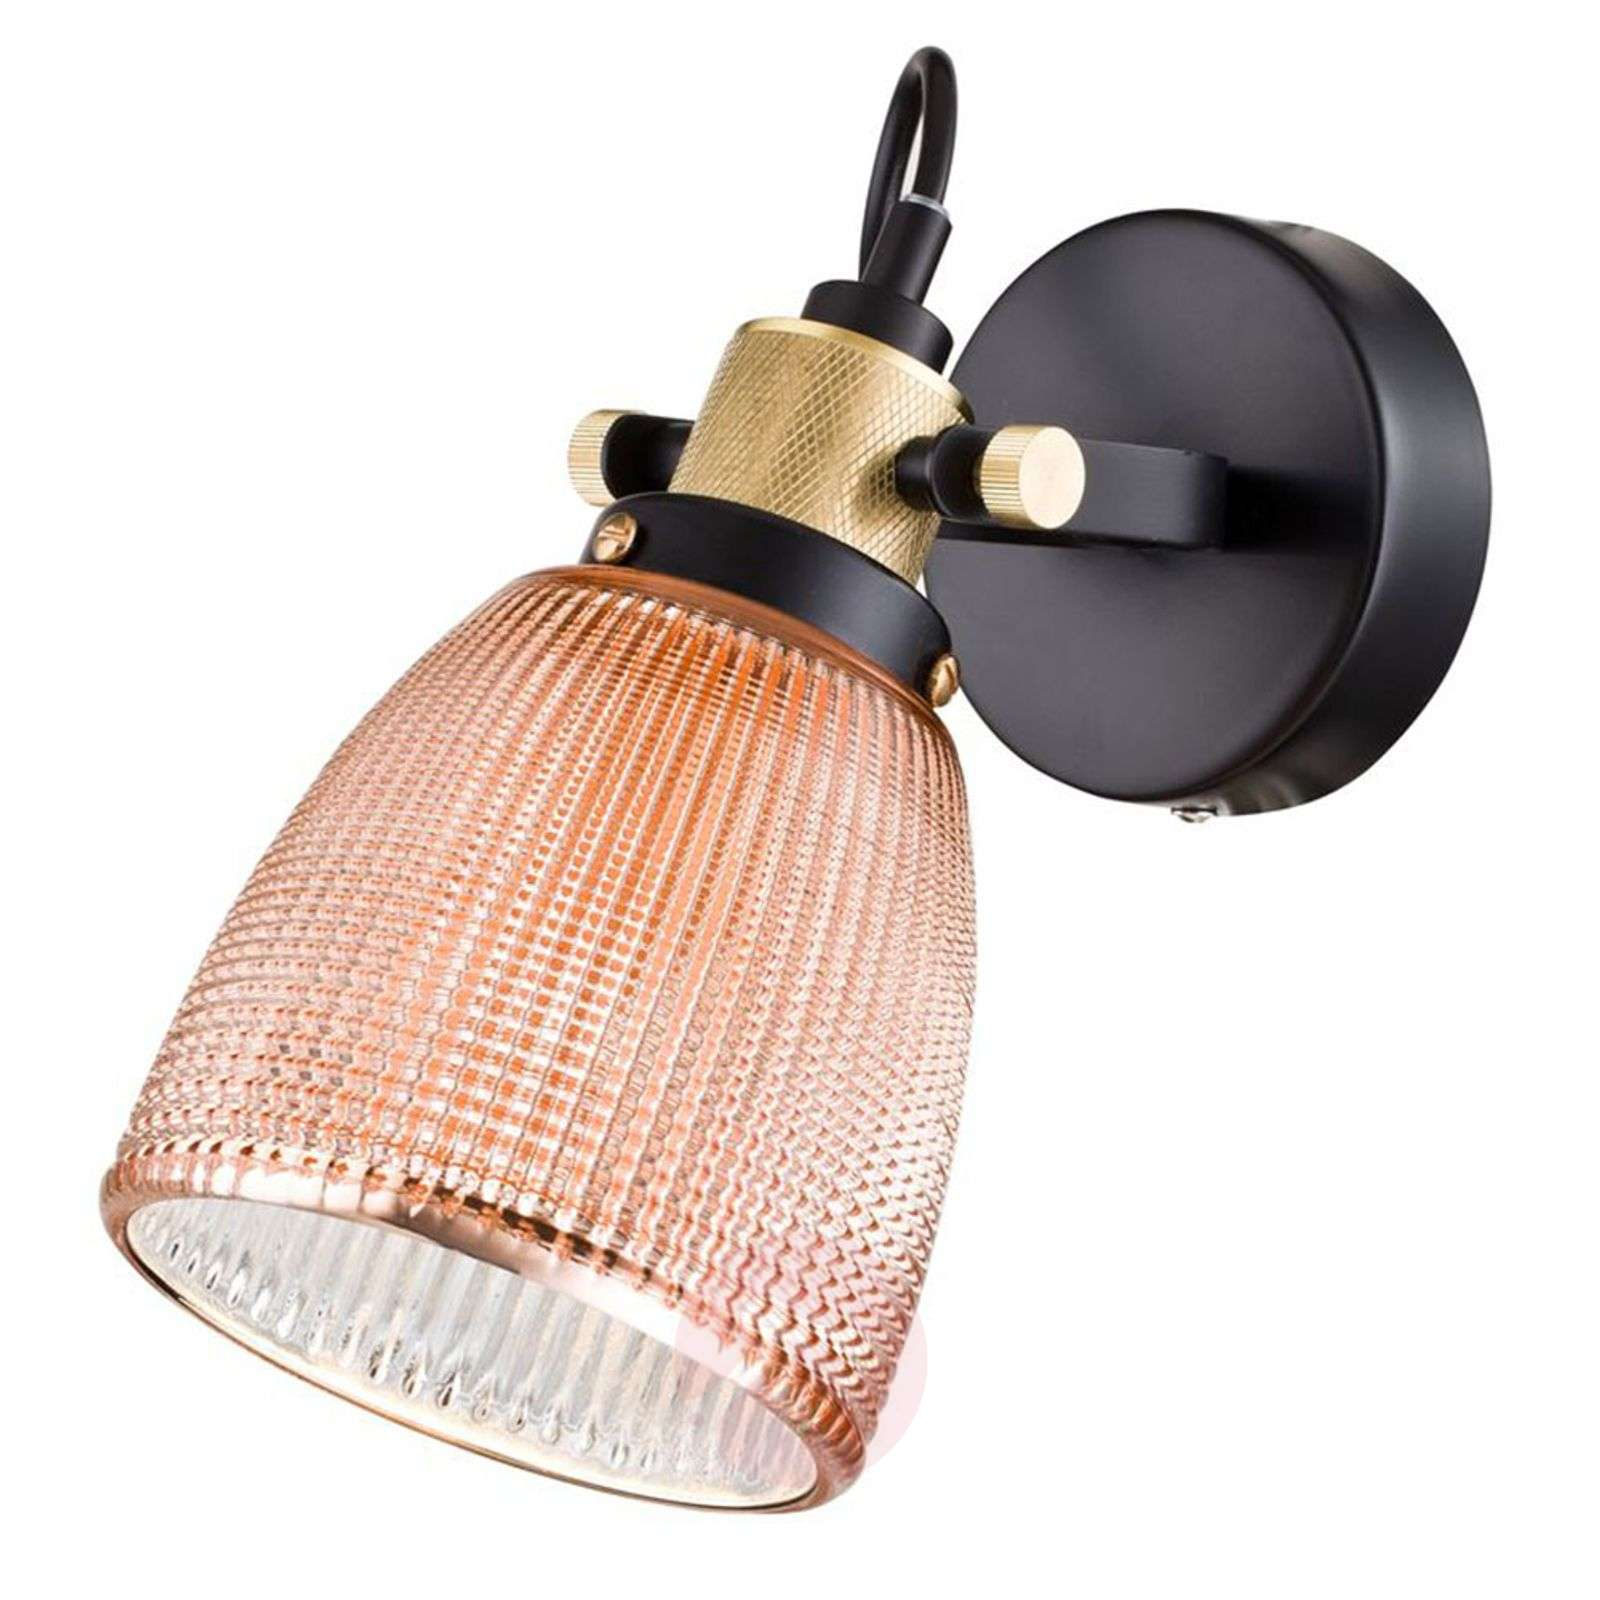 Lampade Rustiche In Rame : Acquista applique tempo con paralume in vetro color rame lampade.it